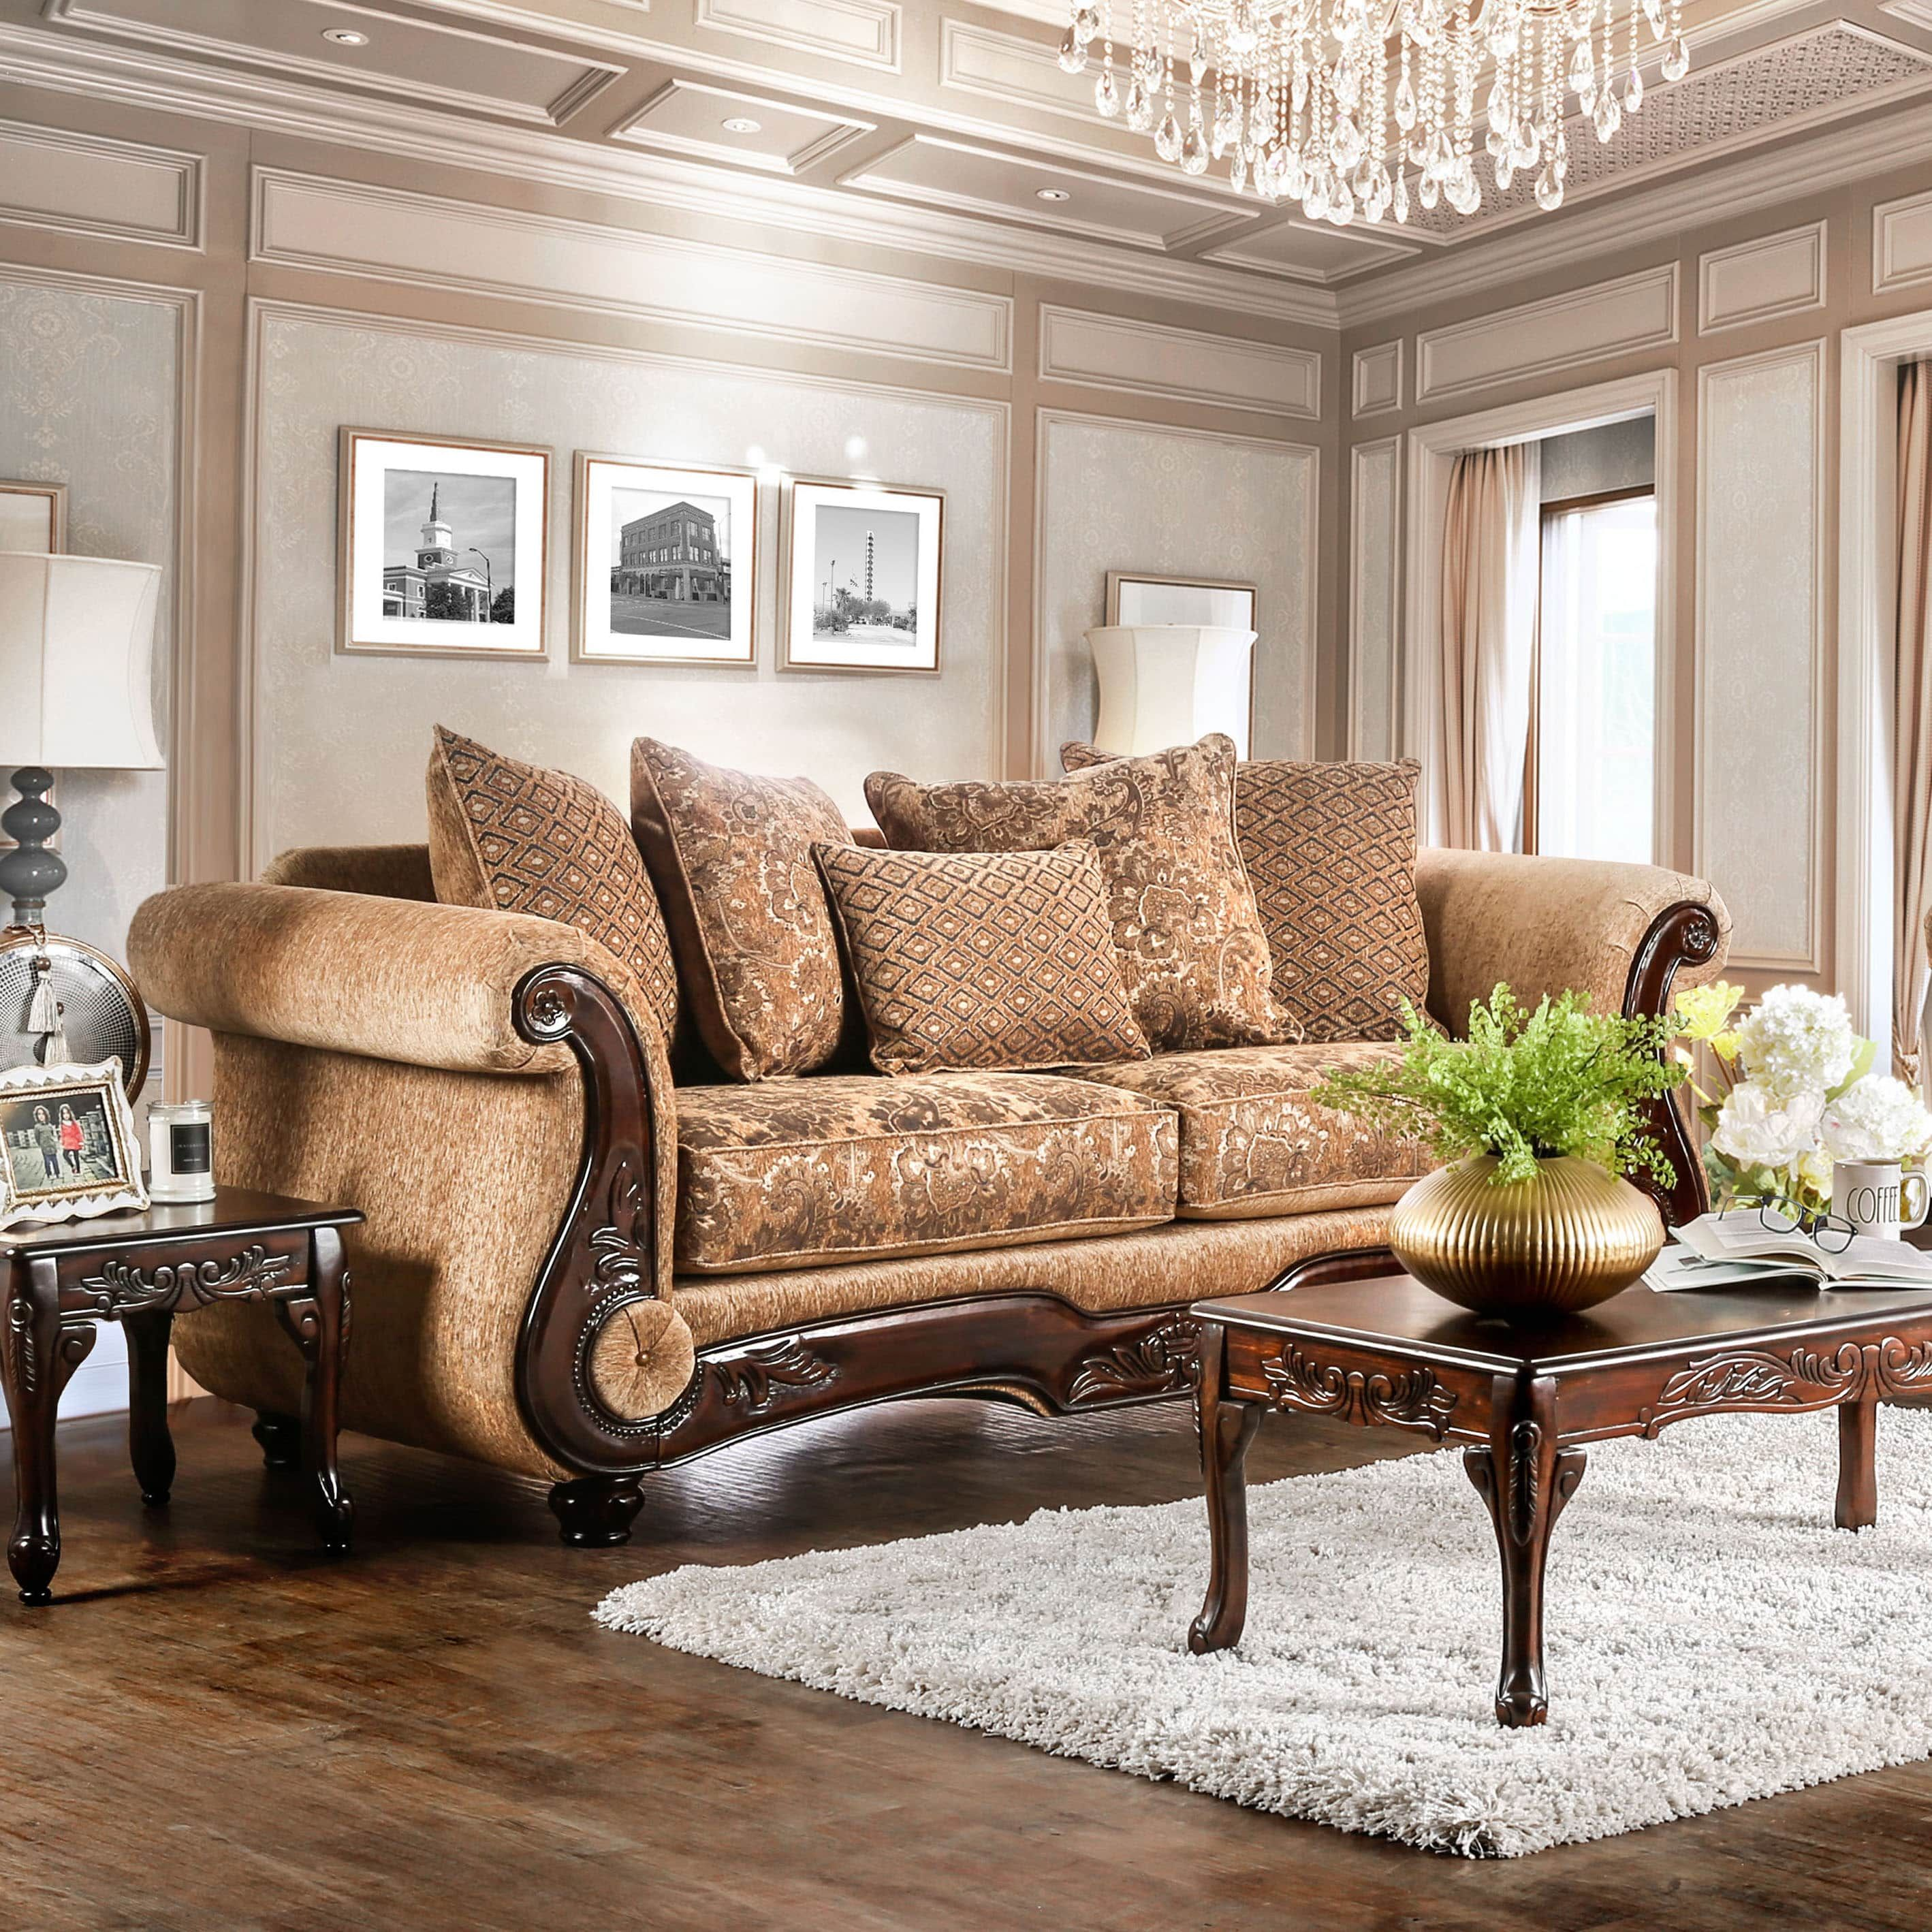 Awesome Couch With Wood Trim Amazing Couch With Wood Trim 13 On Modern Sofa Inspiration With Couch Traditional Sofa Furniture Of America Printed Fabric Sofa